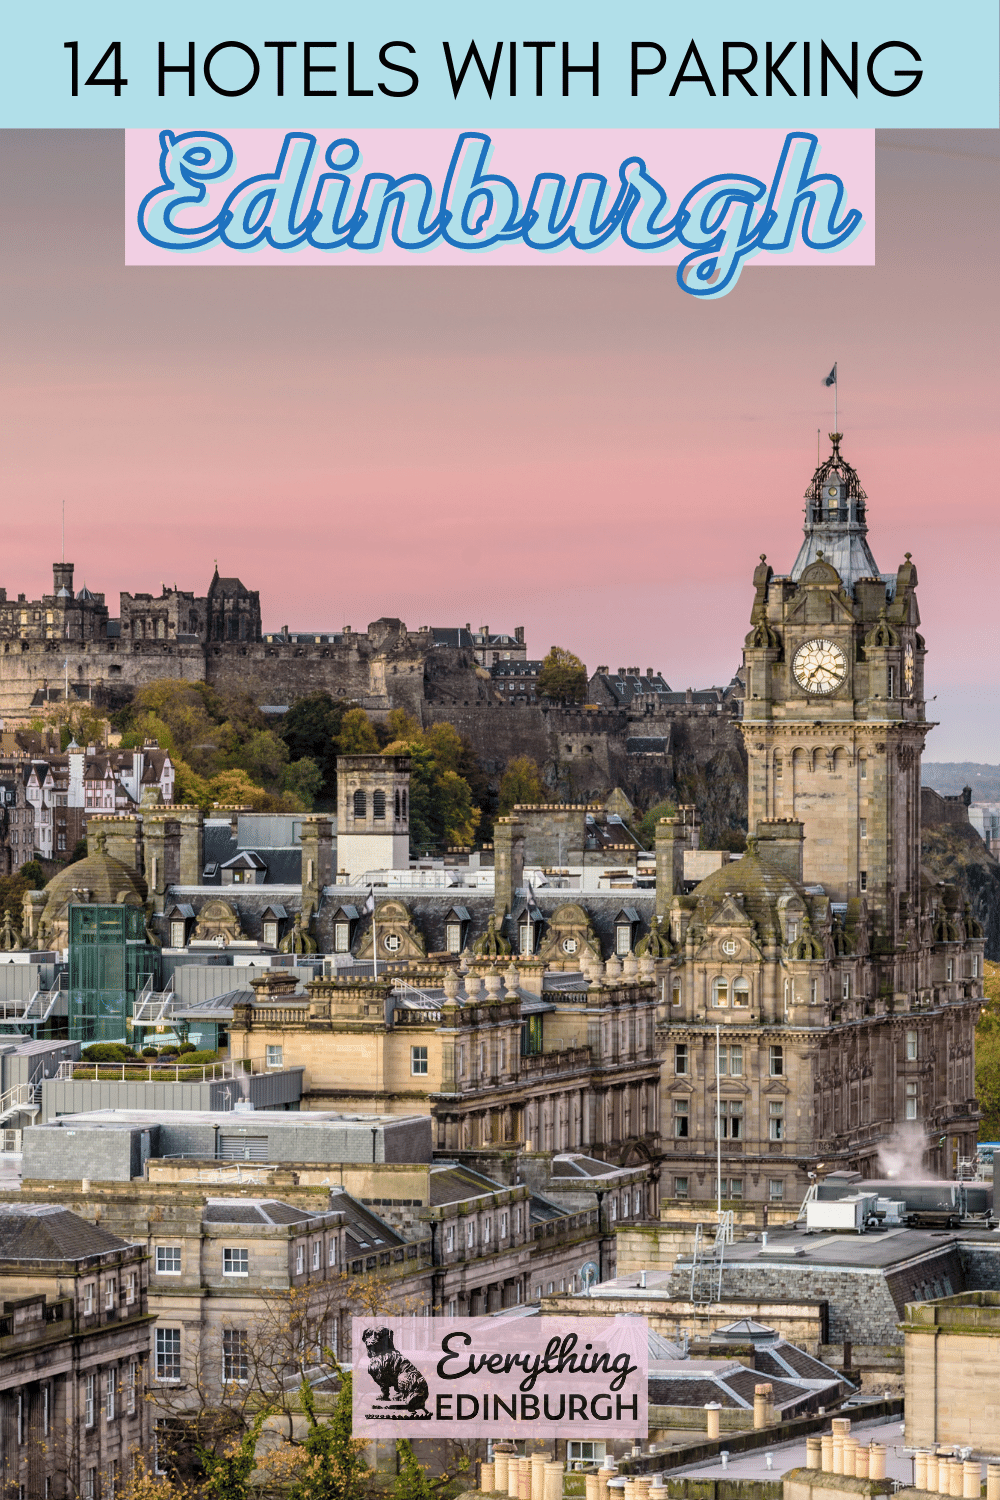 Looking for Edinburgh hotels with parking? This guide details Old Town, City Centre & affordable outside of town hotels with car parks.